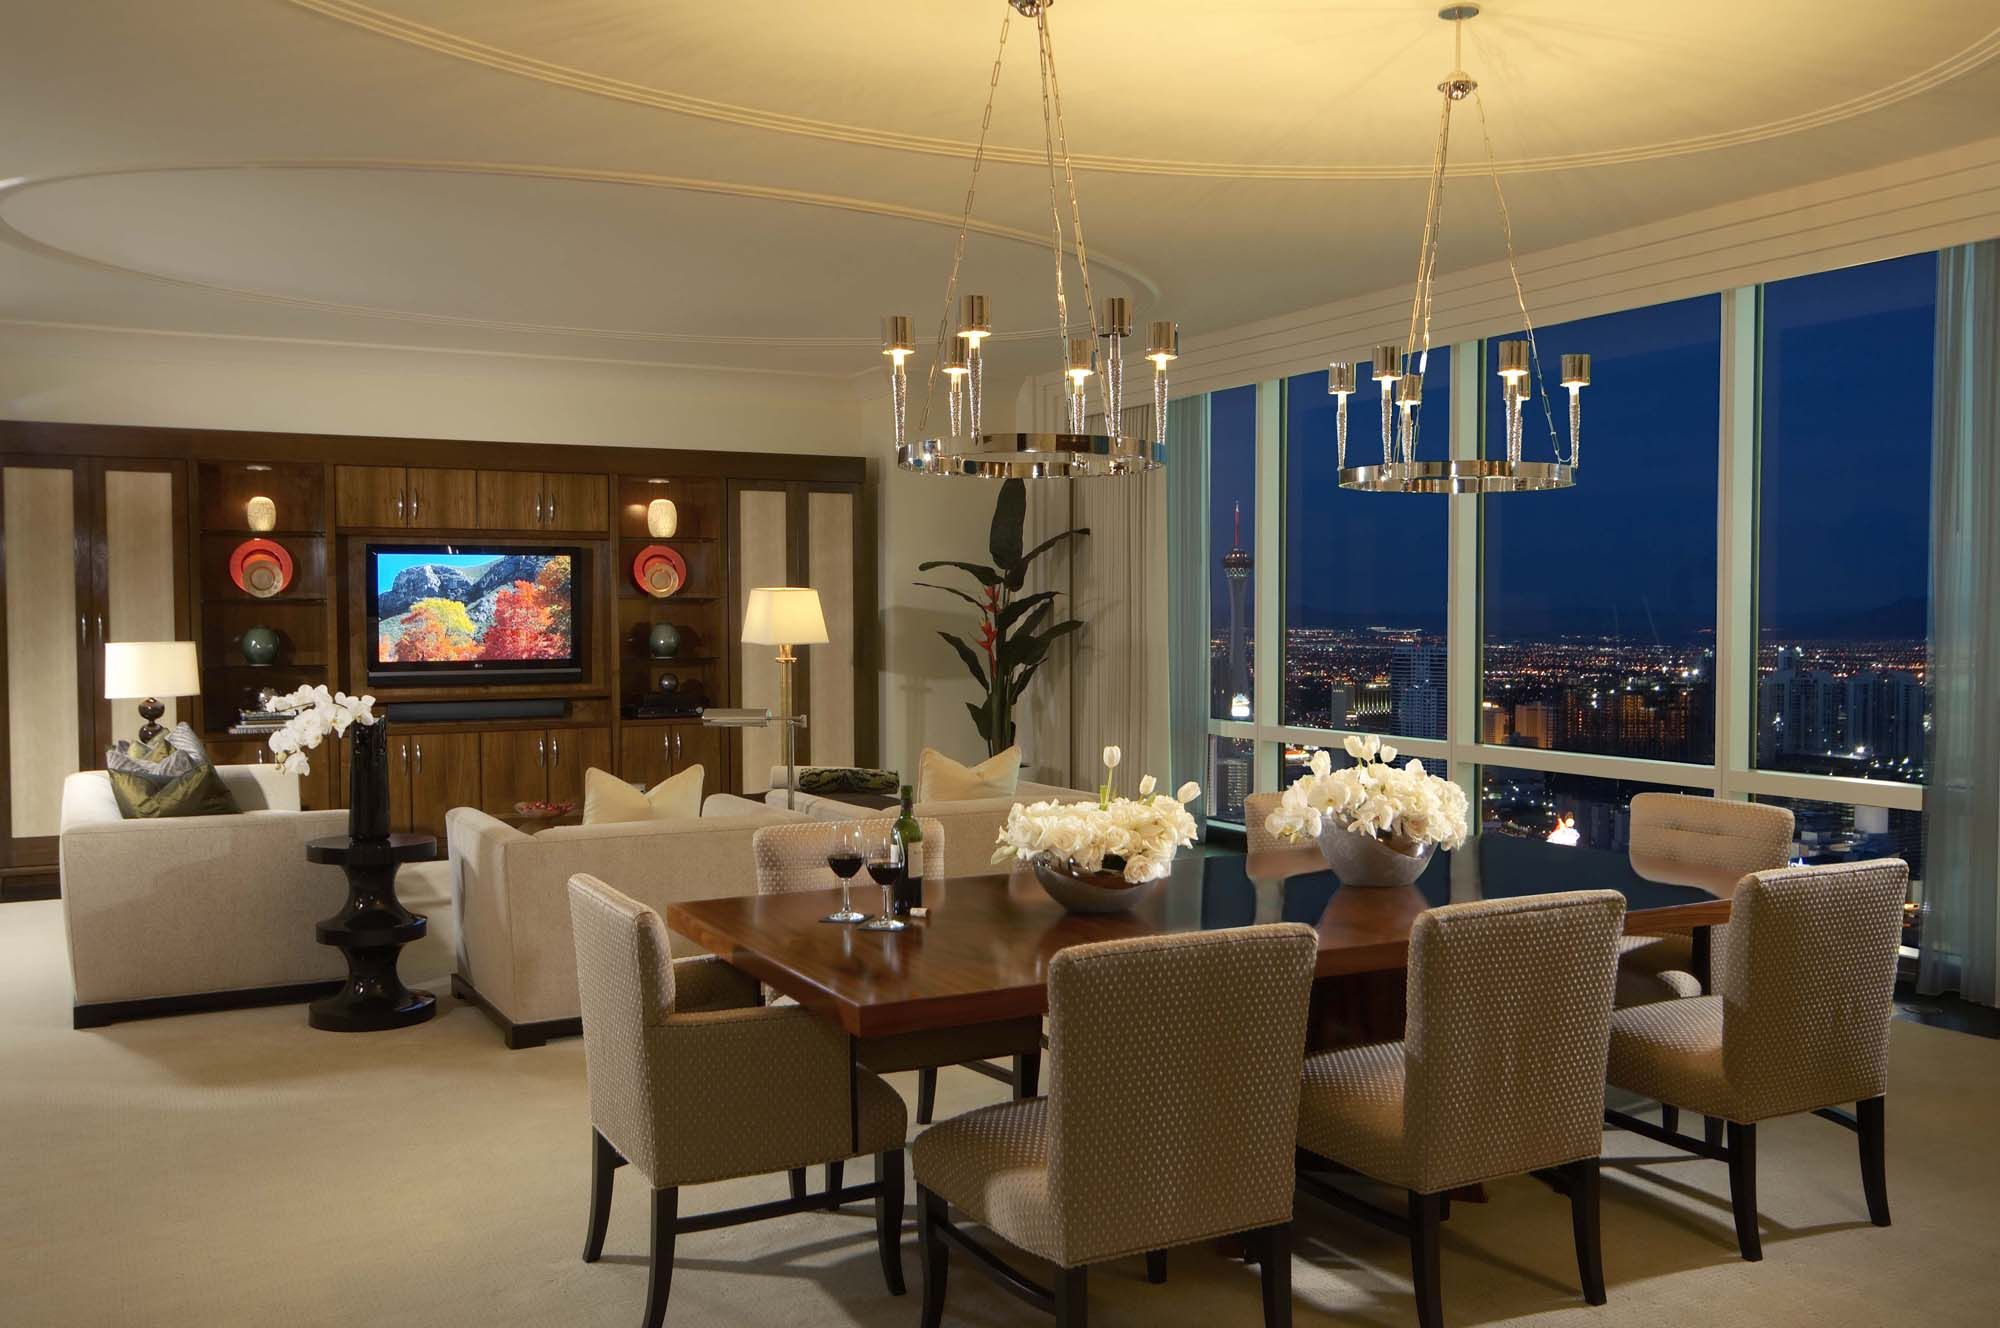 4 Bedroom Apartments In Las Vegas Escape From The Las Vegas Strip In This Quaint 3 76m